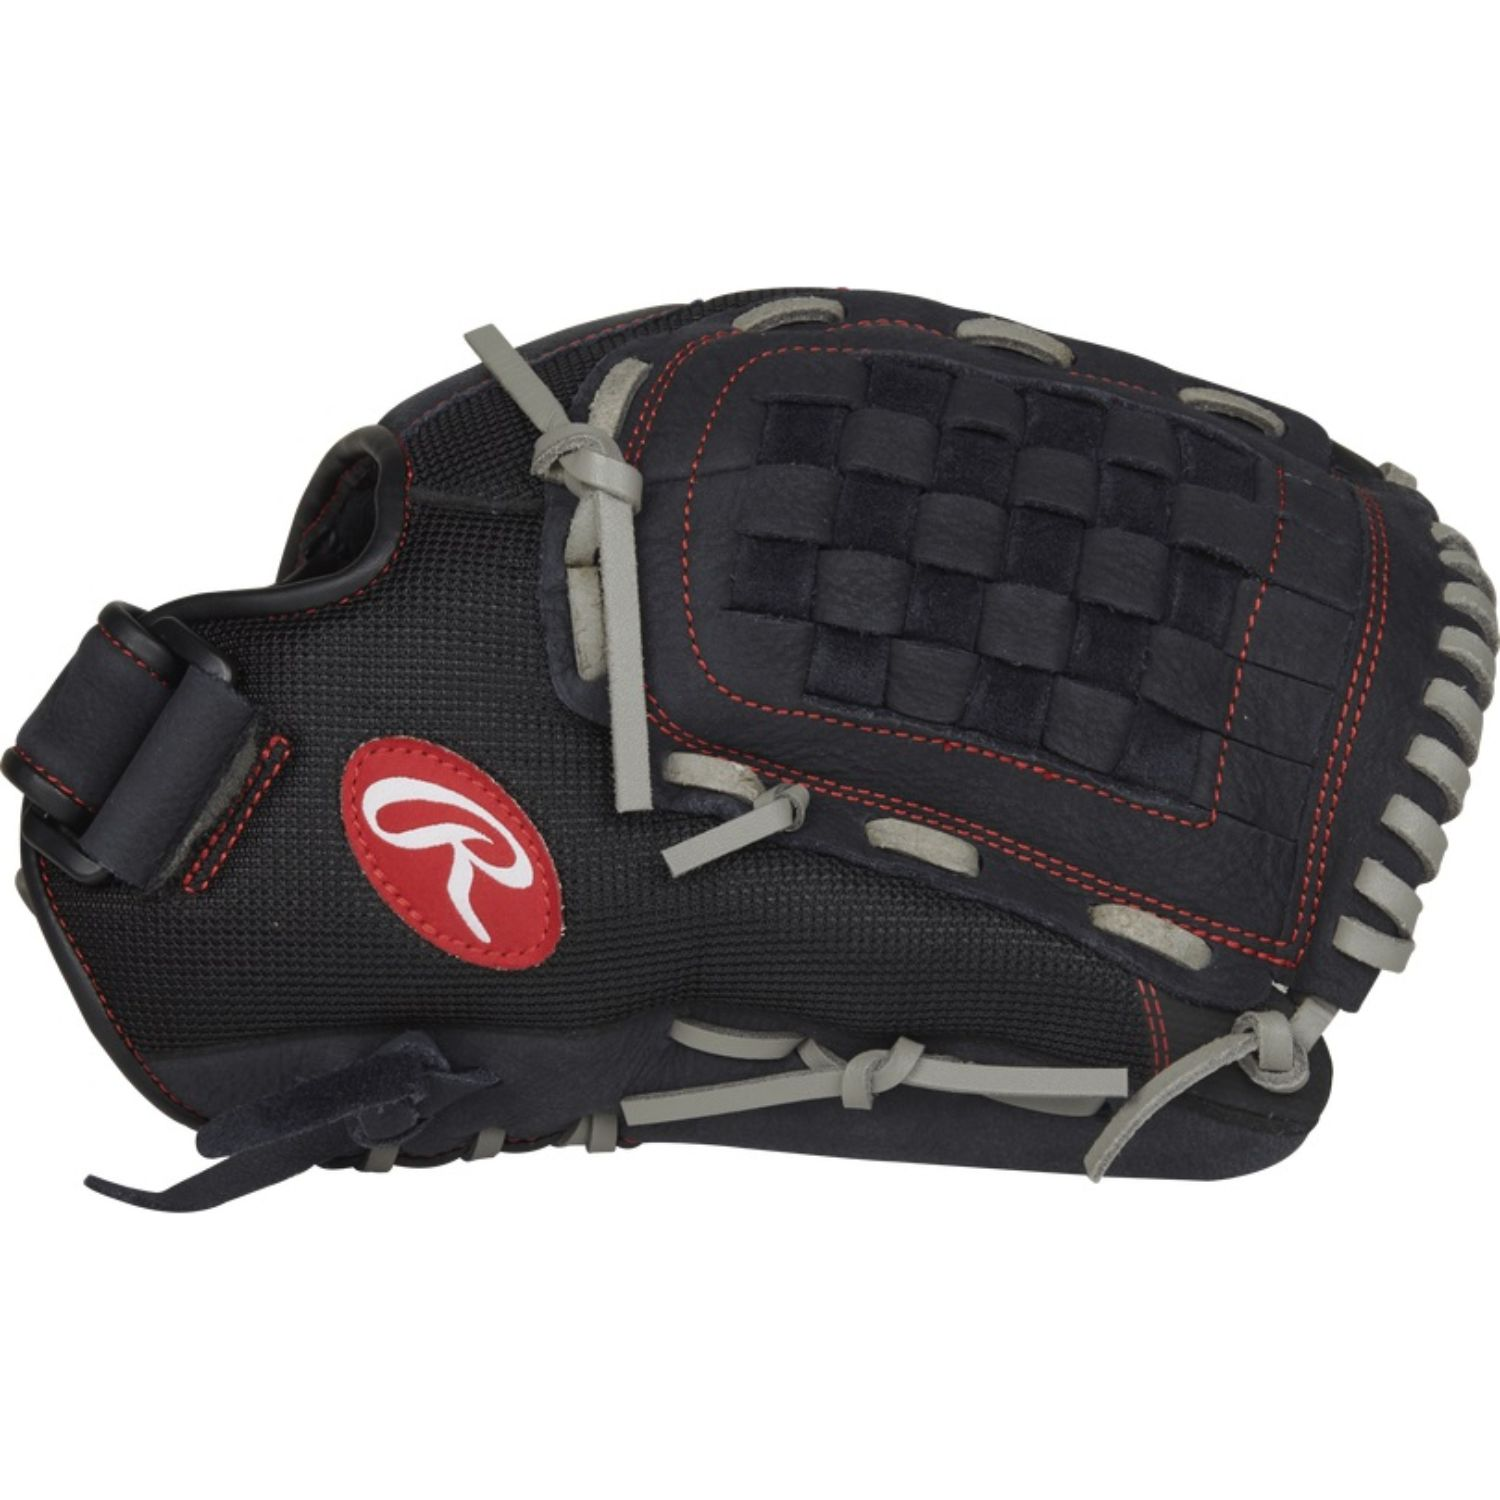 Rawlings Renegade Series 12.5 in Baseball Glove RH